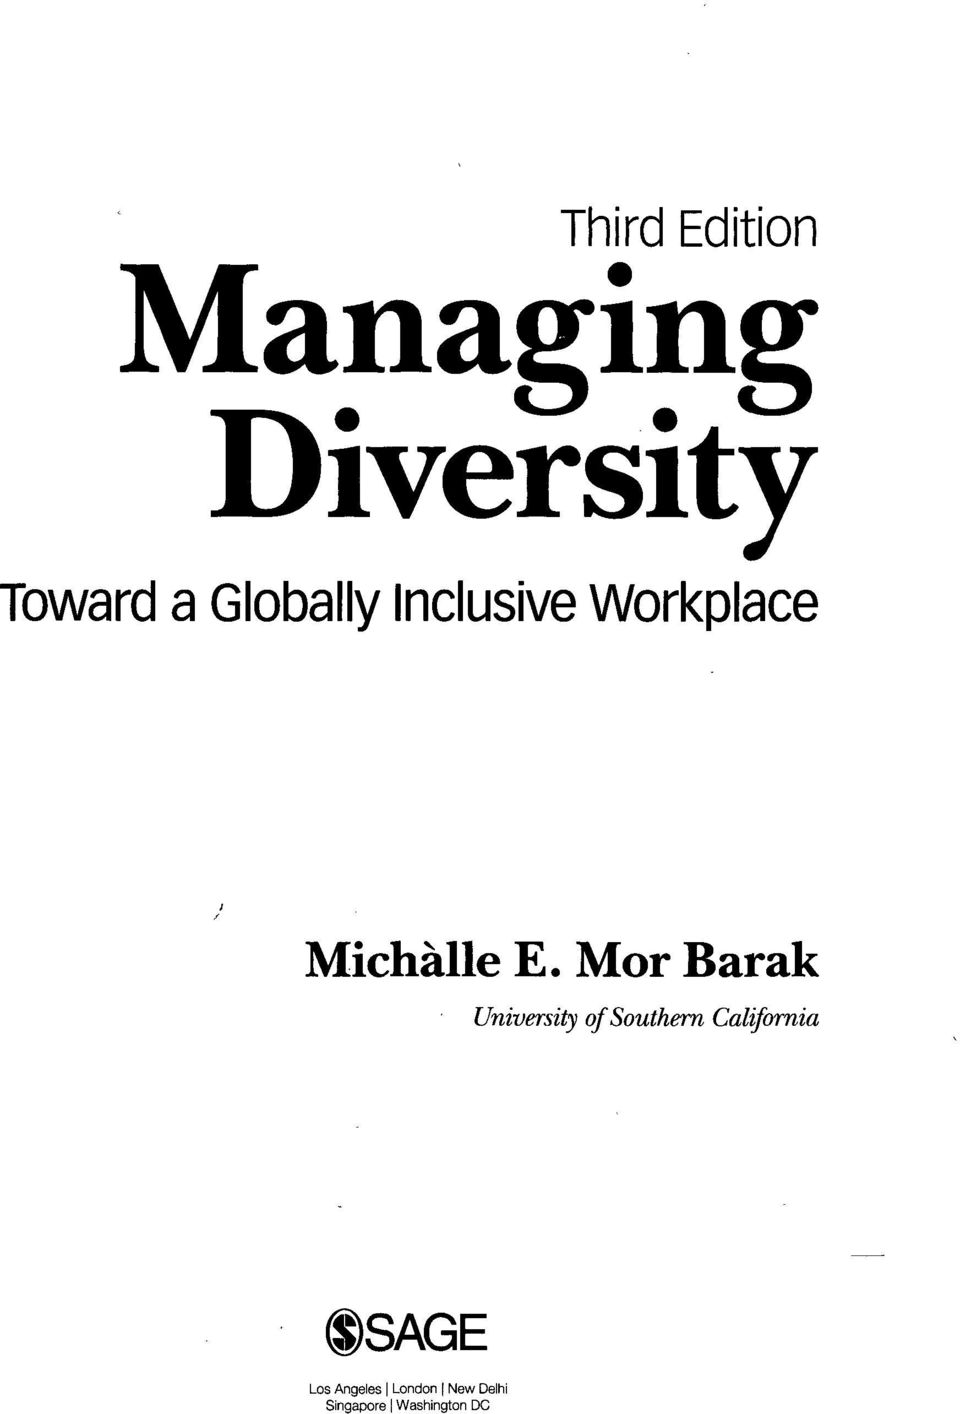 Managing Diversity. Third Edition. Toward a Globally ... Managing Diversity:  Toward a Globally Inclusive Workplace .